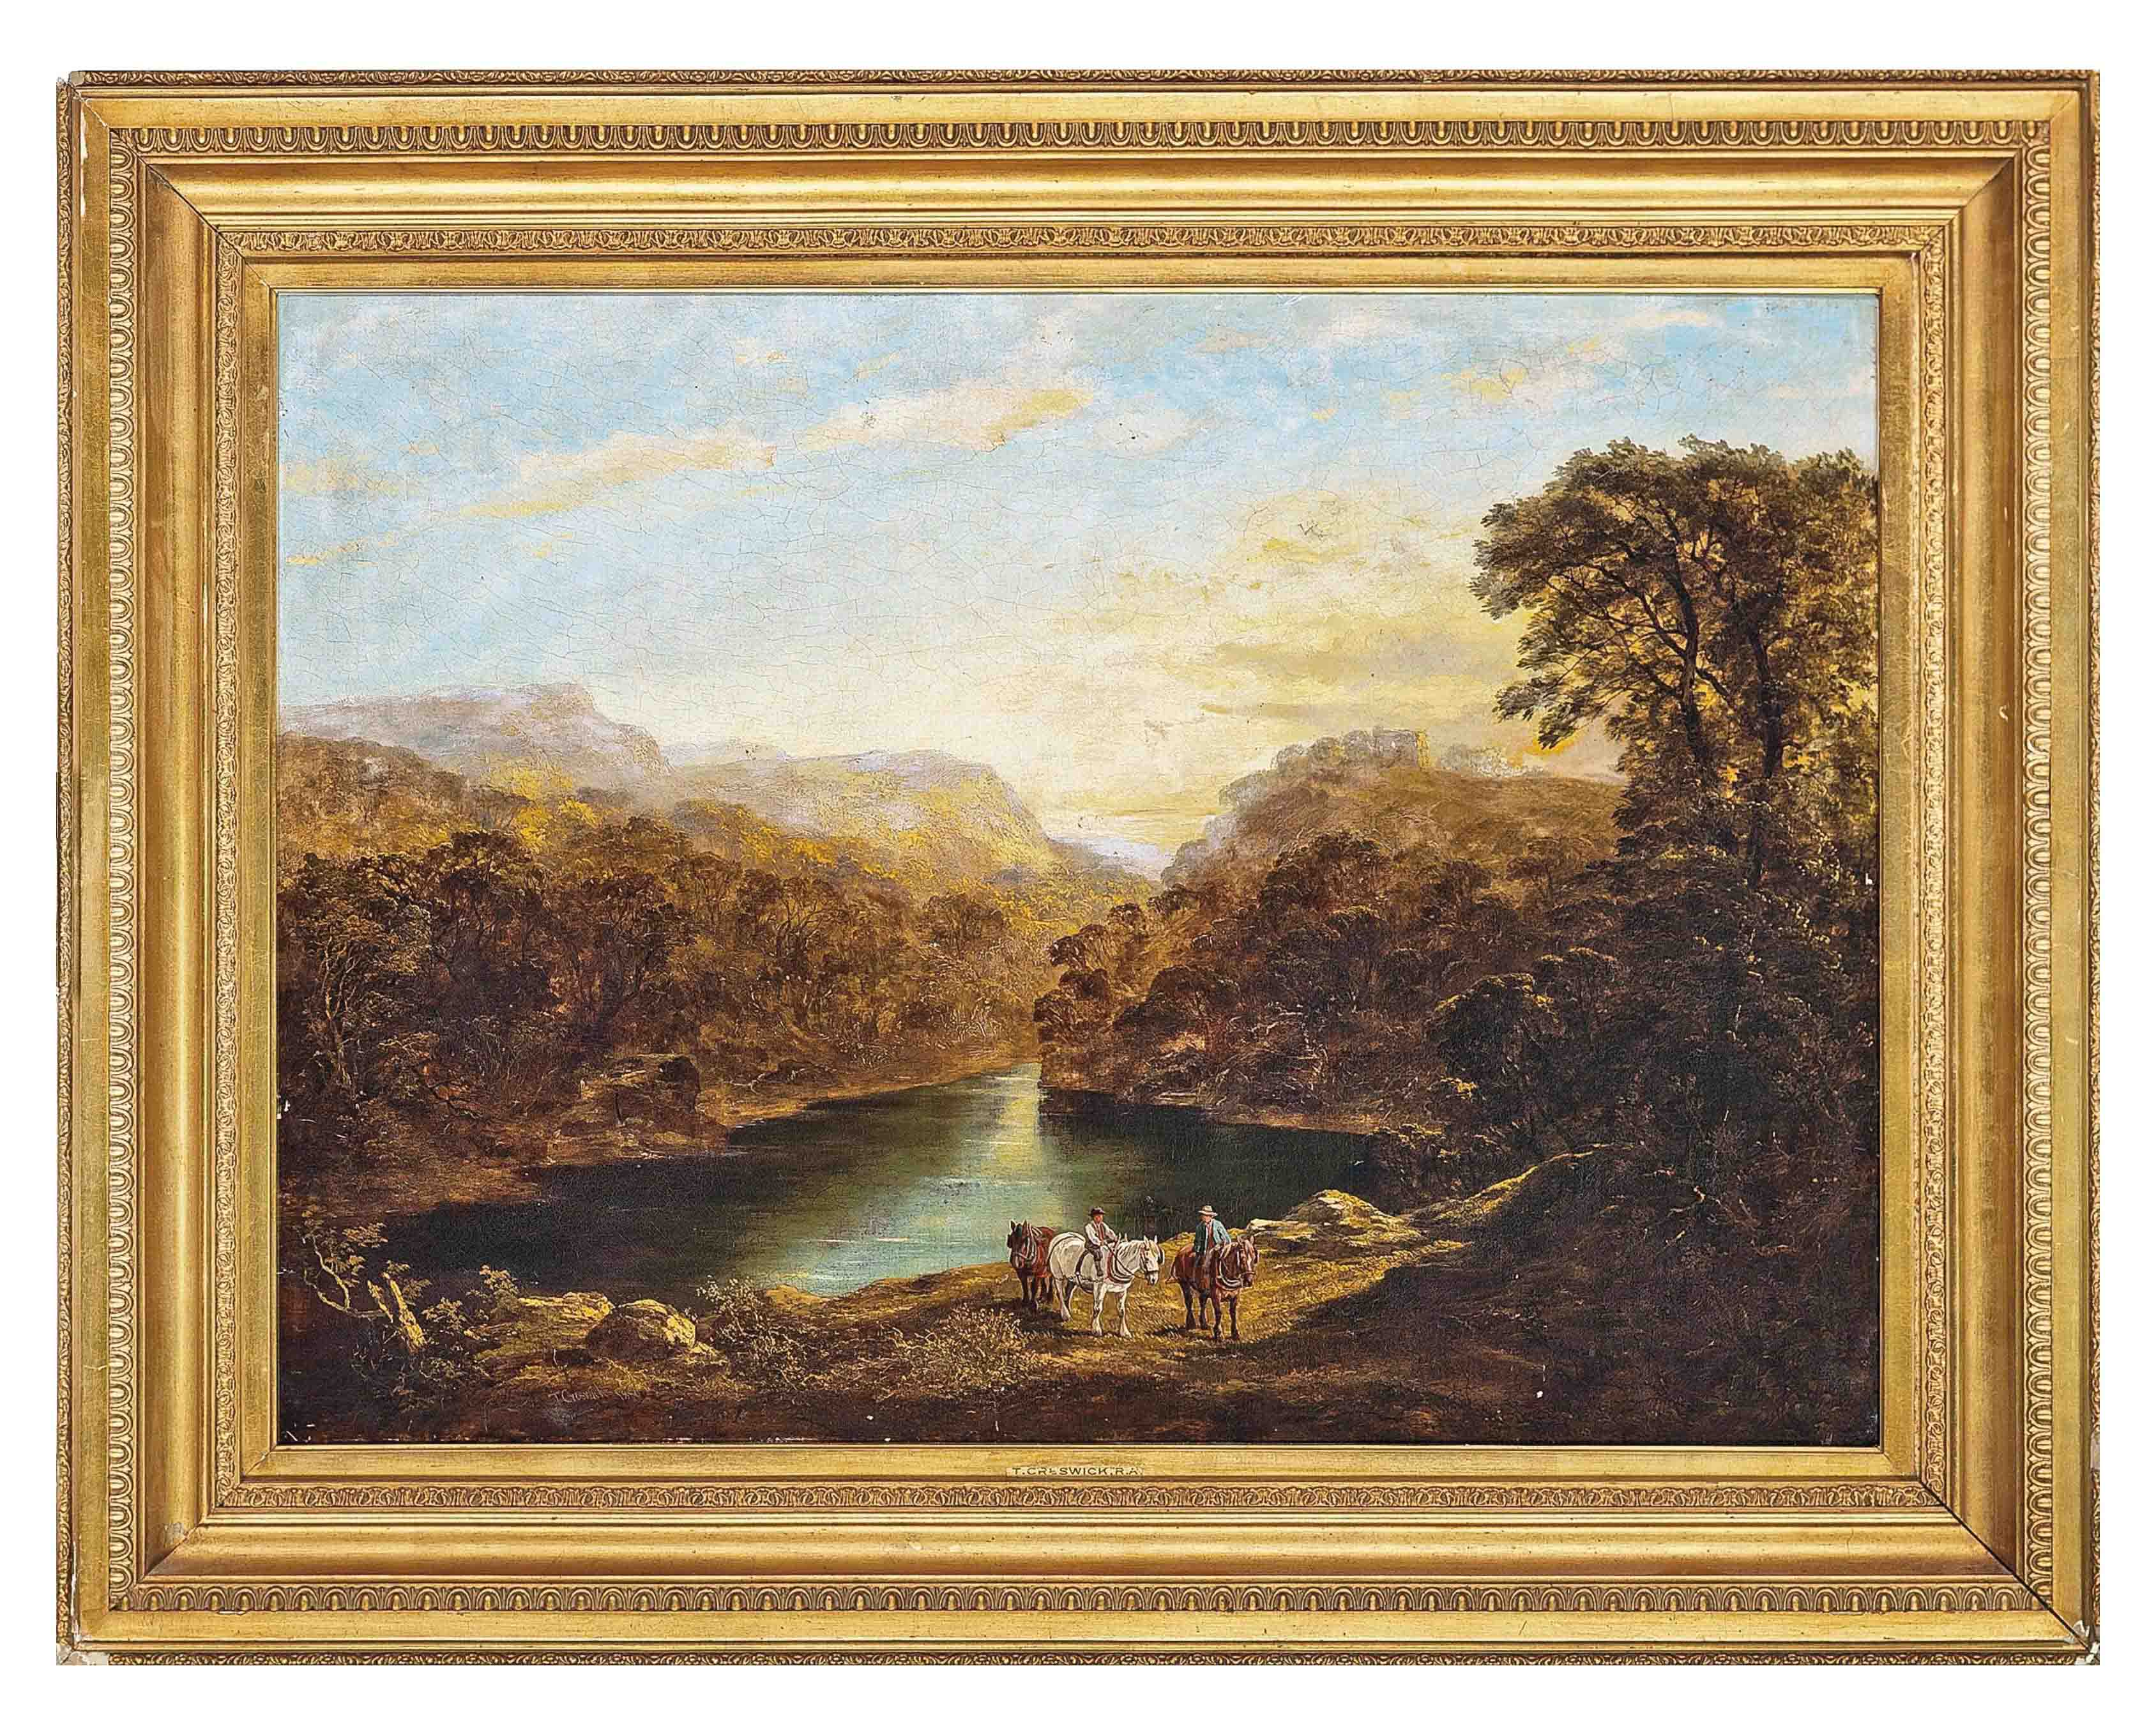 A mountainous landscape with travellers by a lake